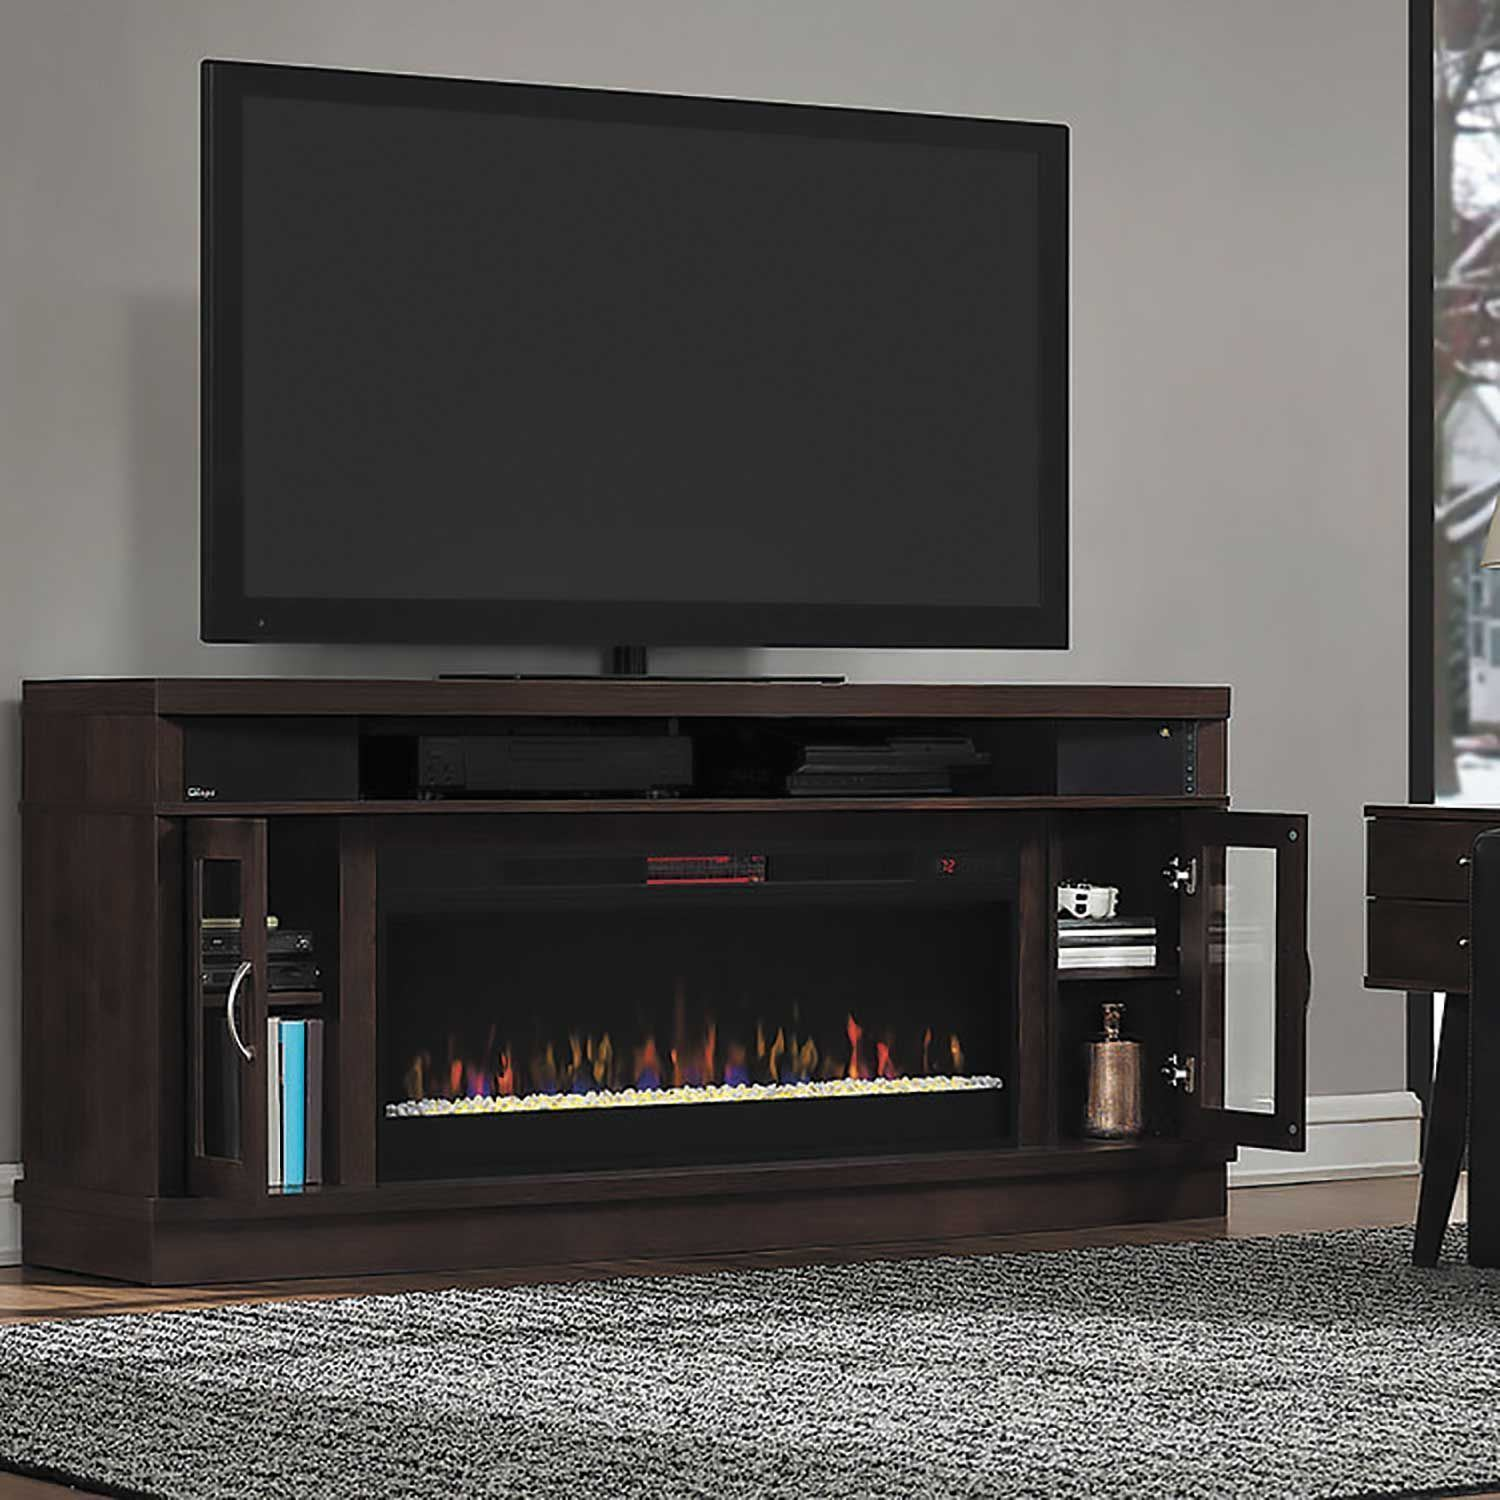 Deerfield Media Fireplace